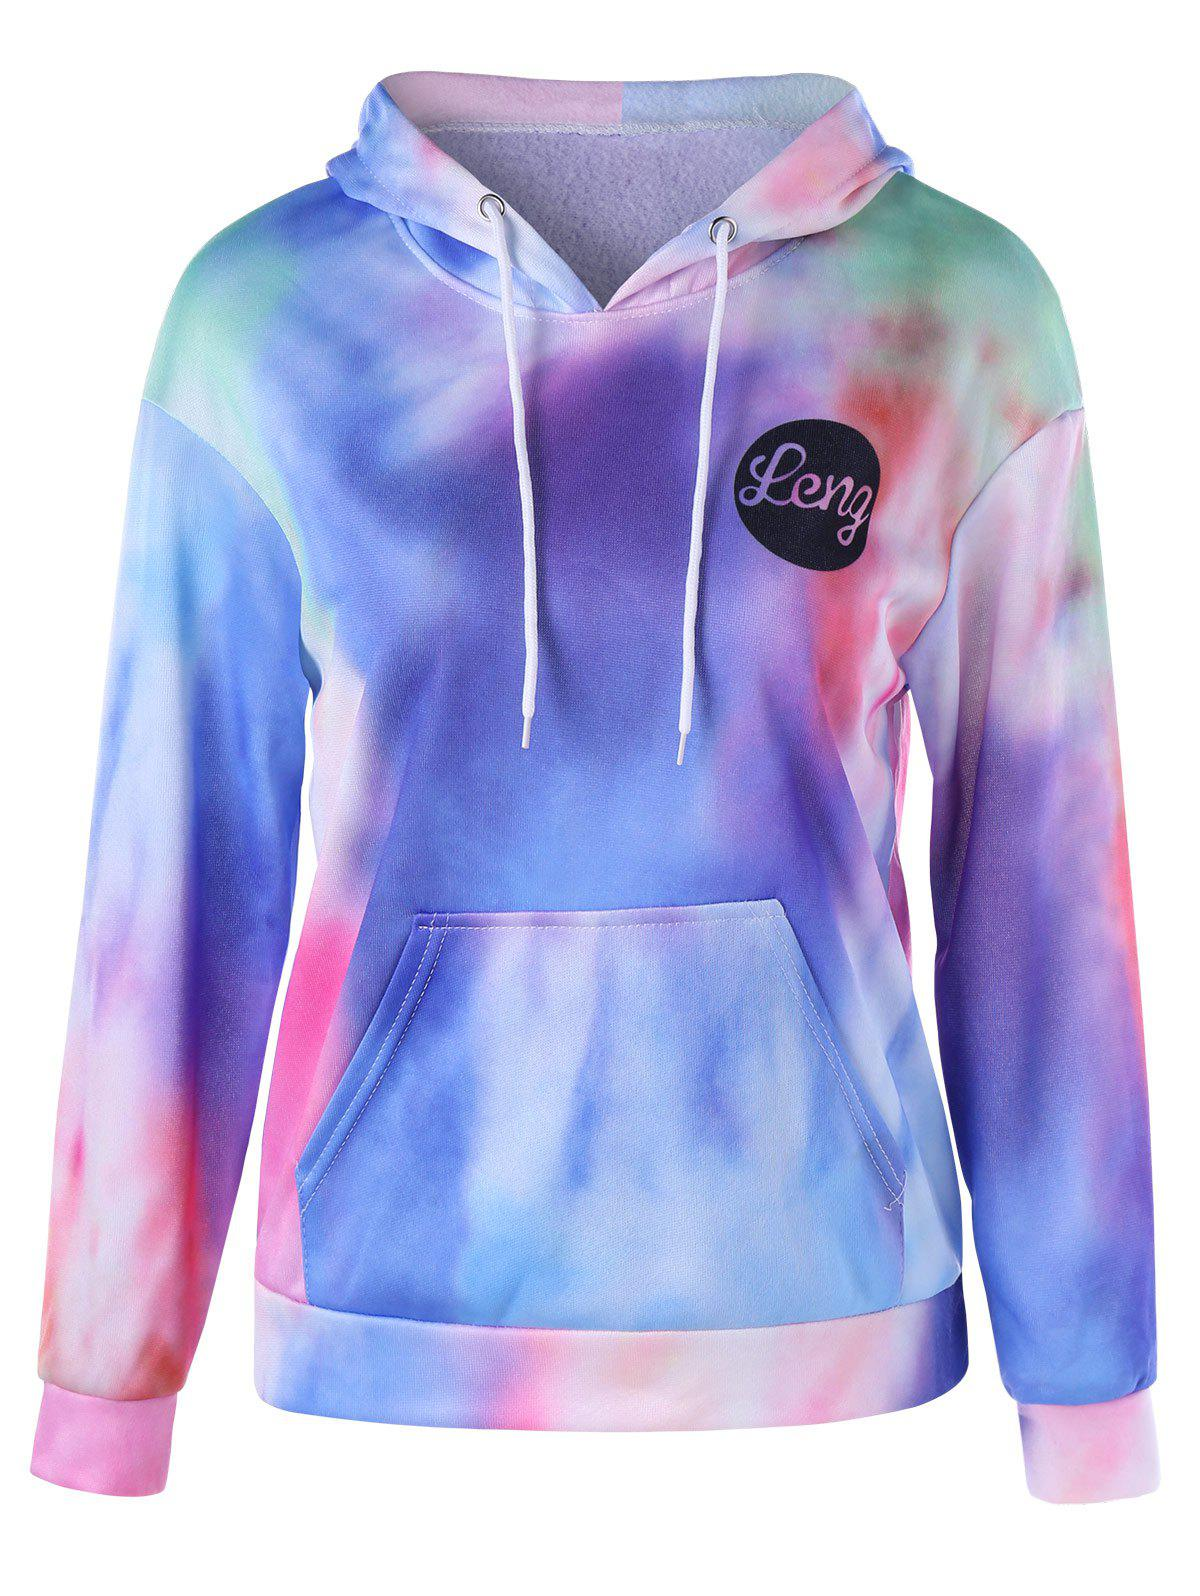 Tie Dye Kangaroo Pocket Graphic Hoodie tie dye trim kangaroo pocket dress